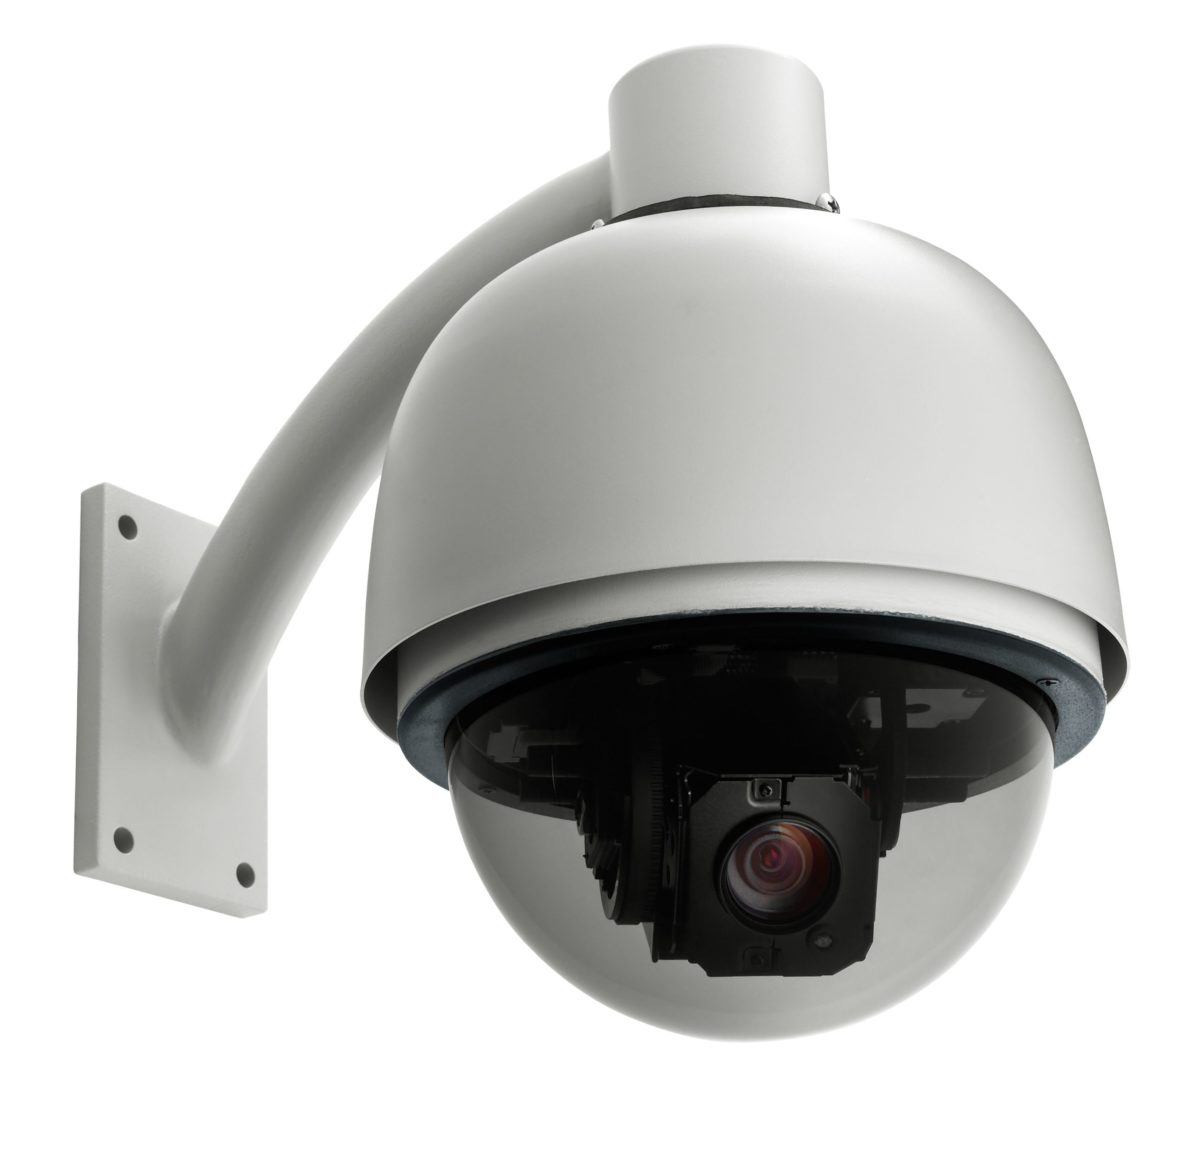 Benefits of Installing a Video Surveillance System in Your Home or Office